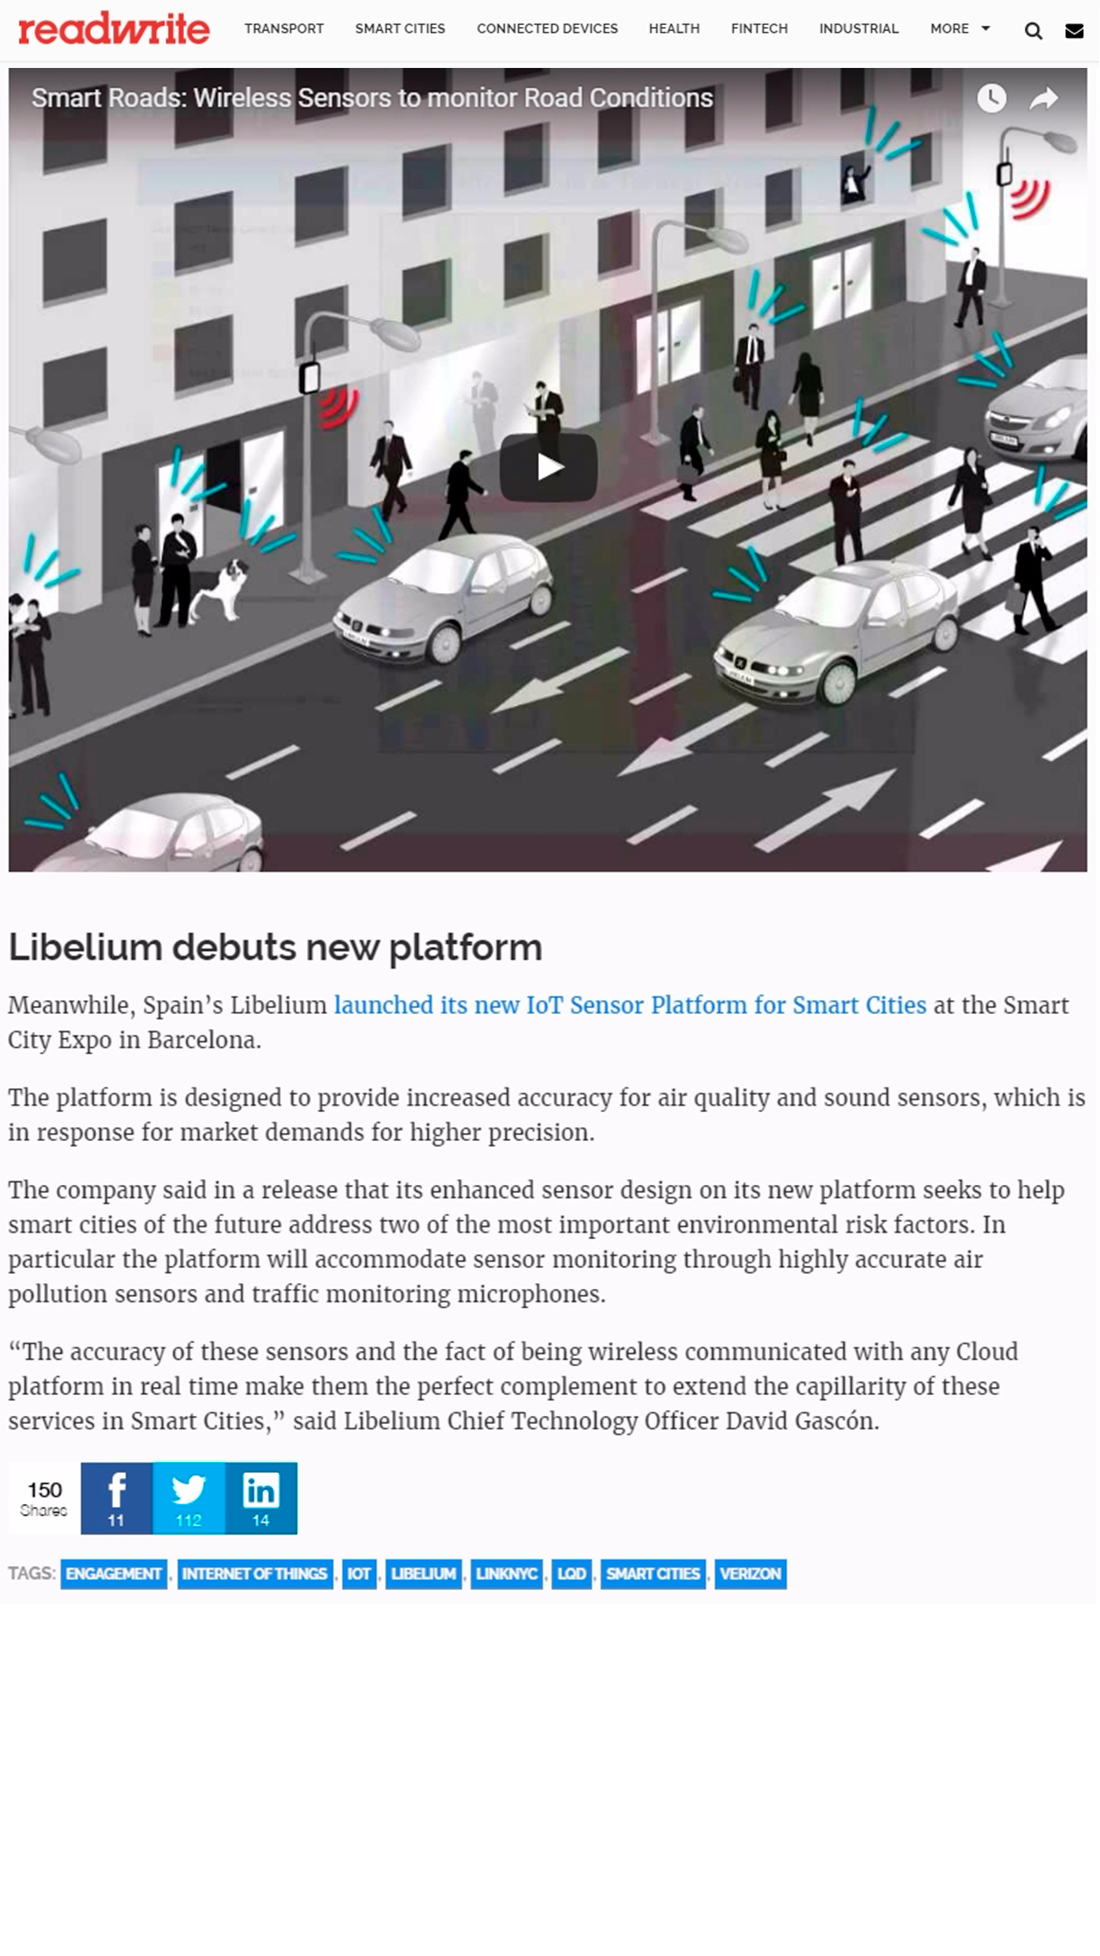 Readwrite – Lots of smart city deal action with Libelium, Verizon as space heats up